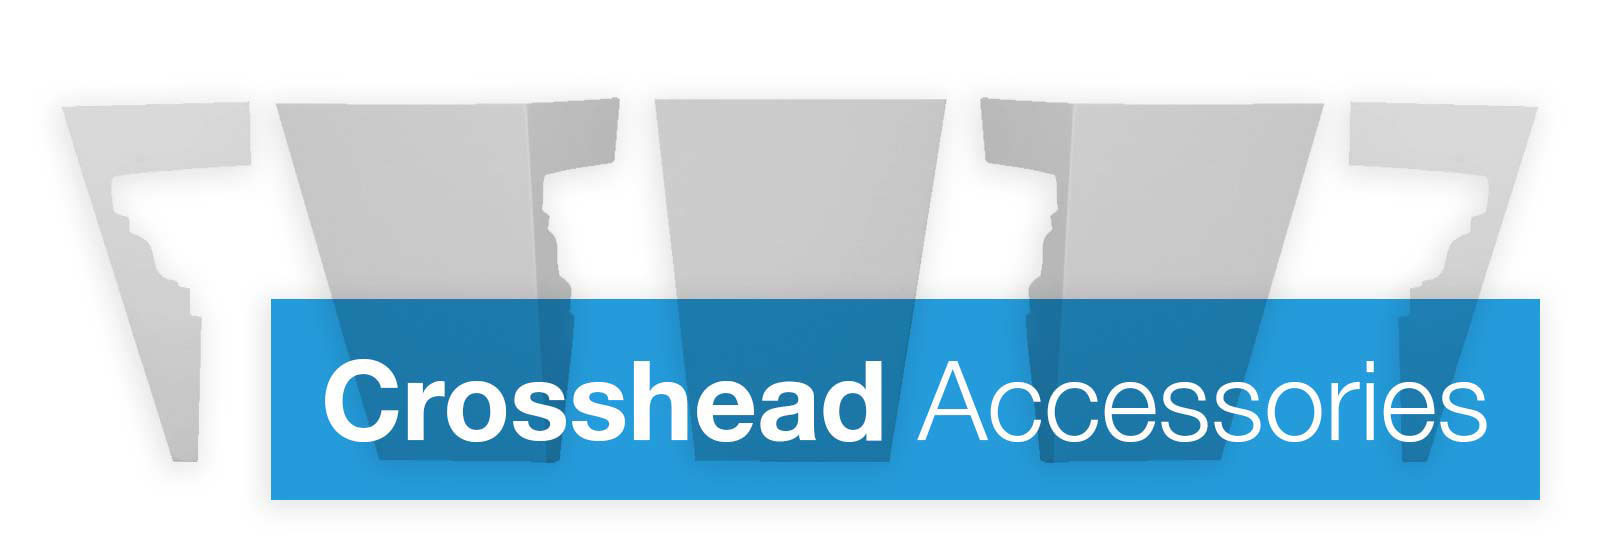 Crosshead Accessories